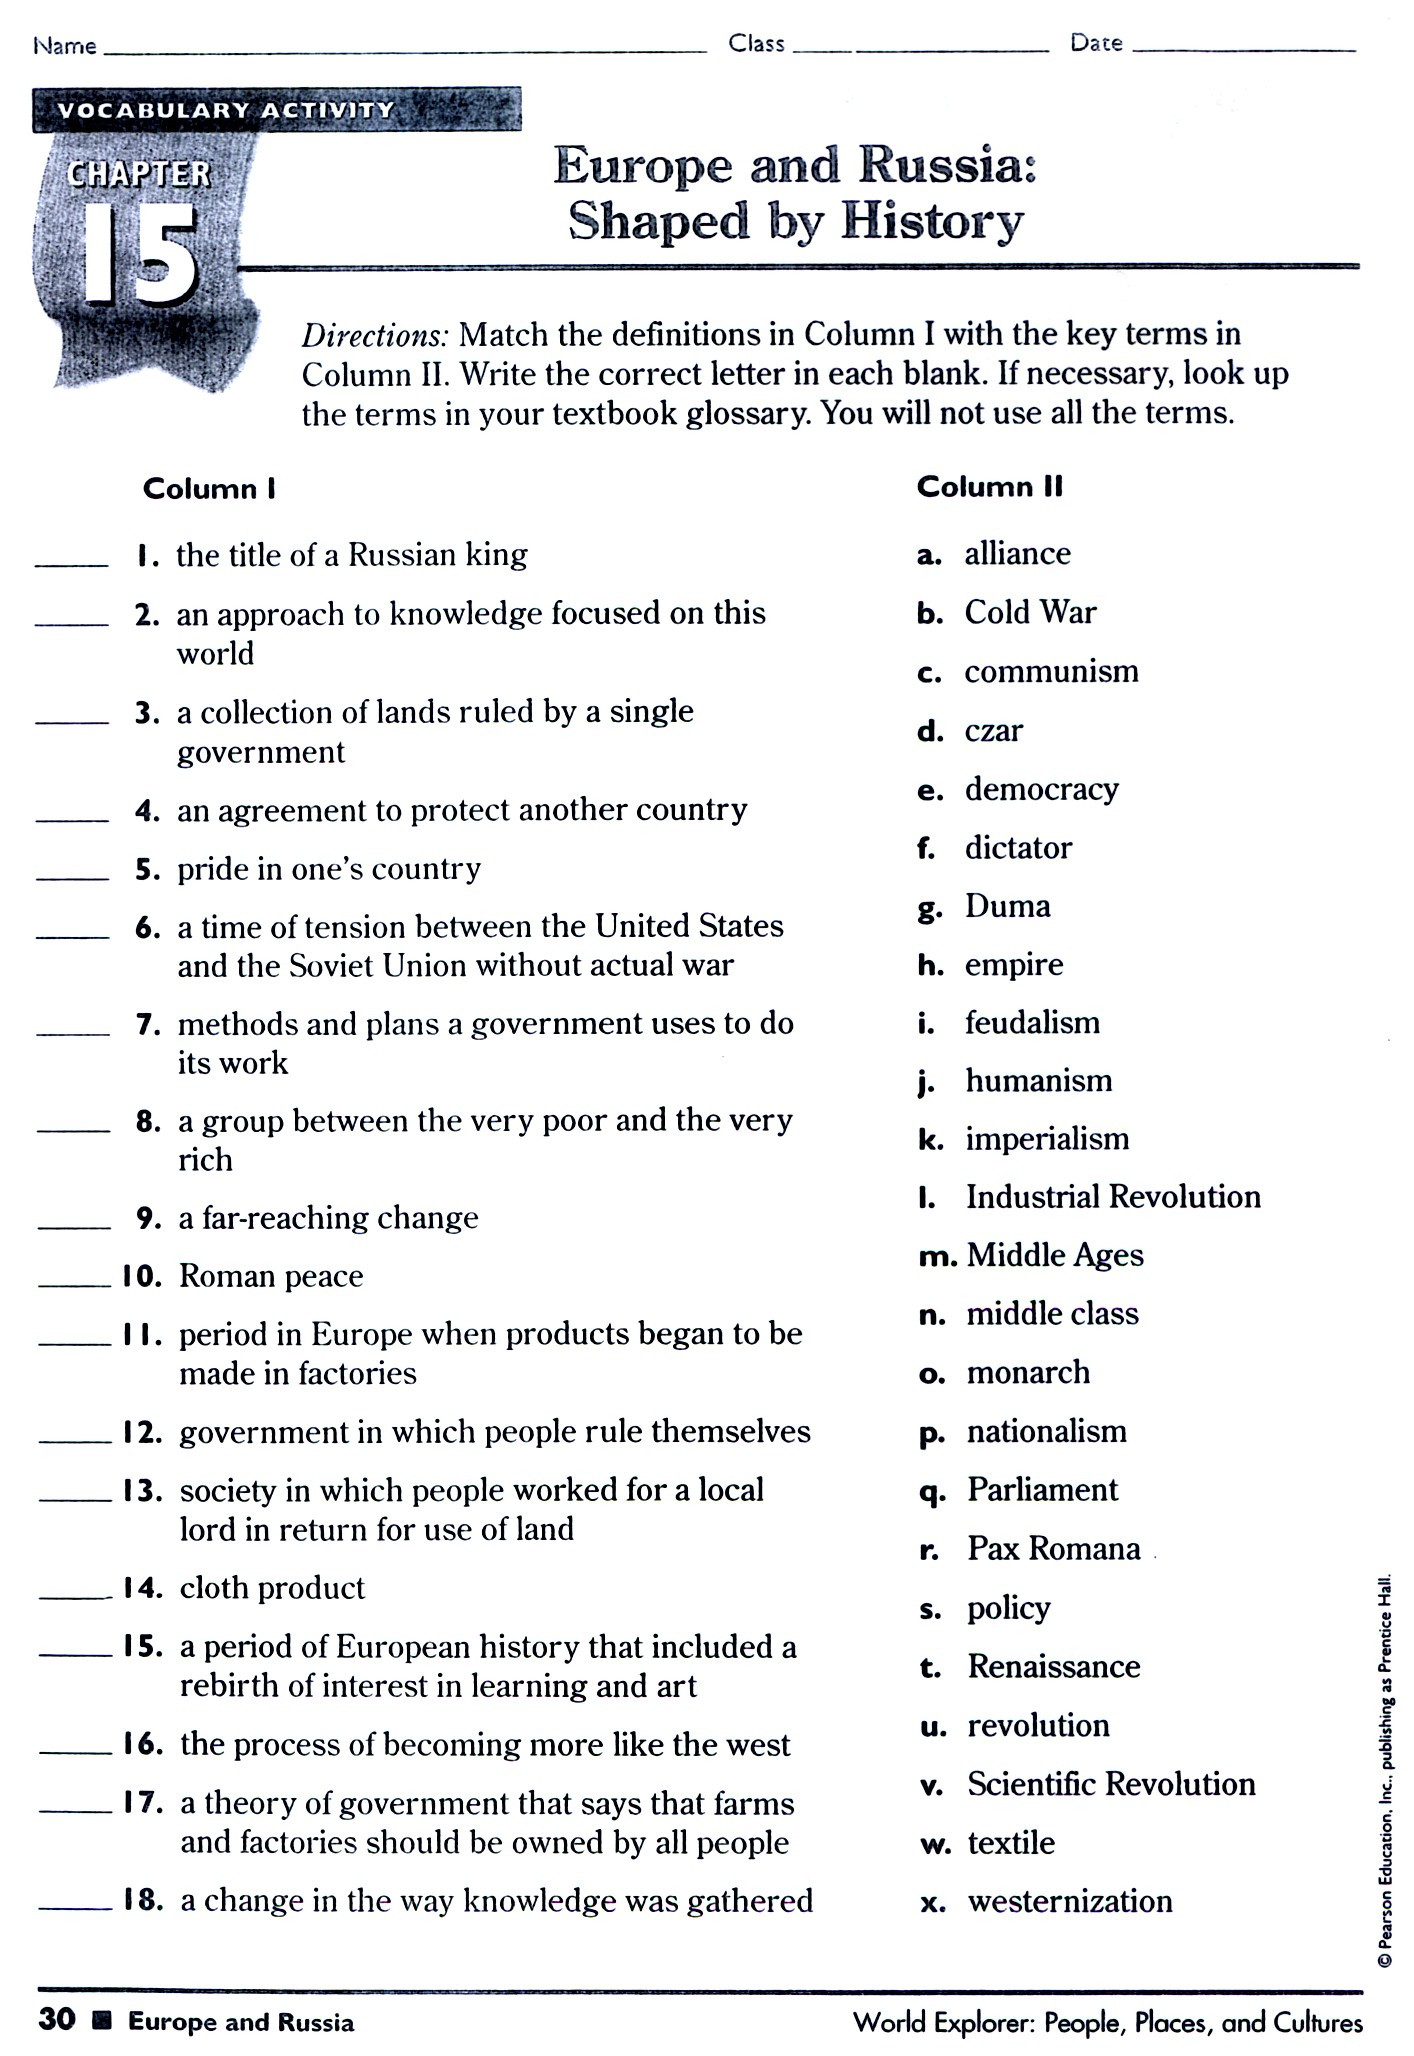 5th Grade History Worksheets 5th Grade U S History Worksheet